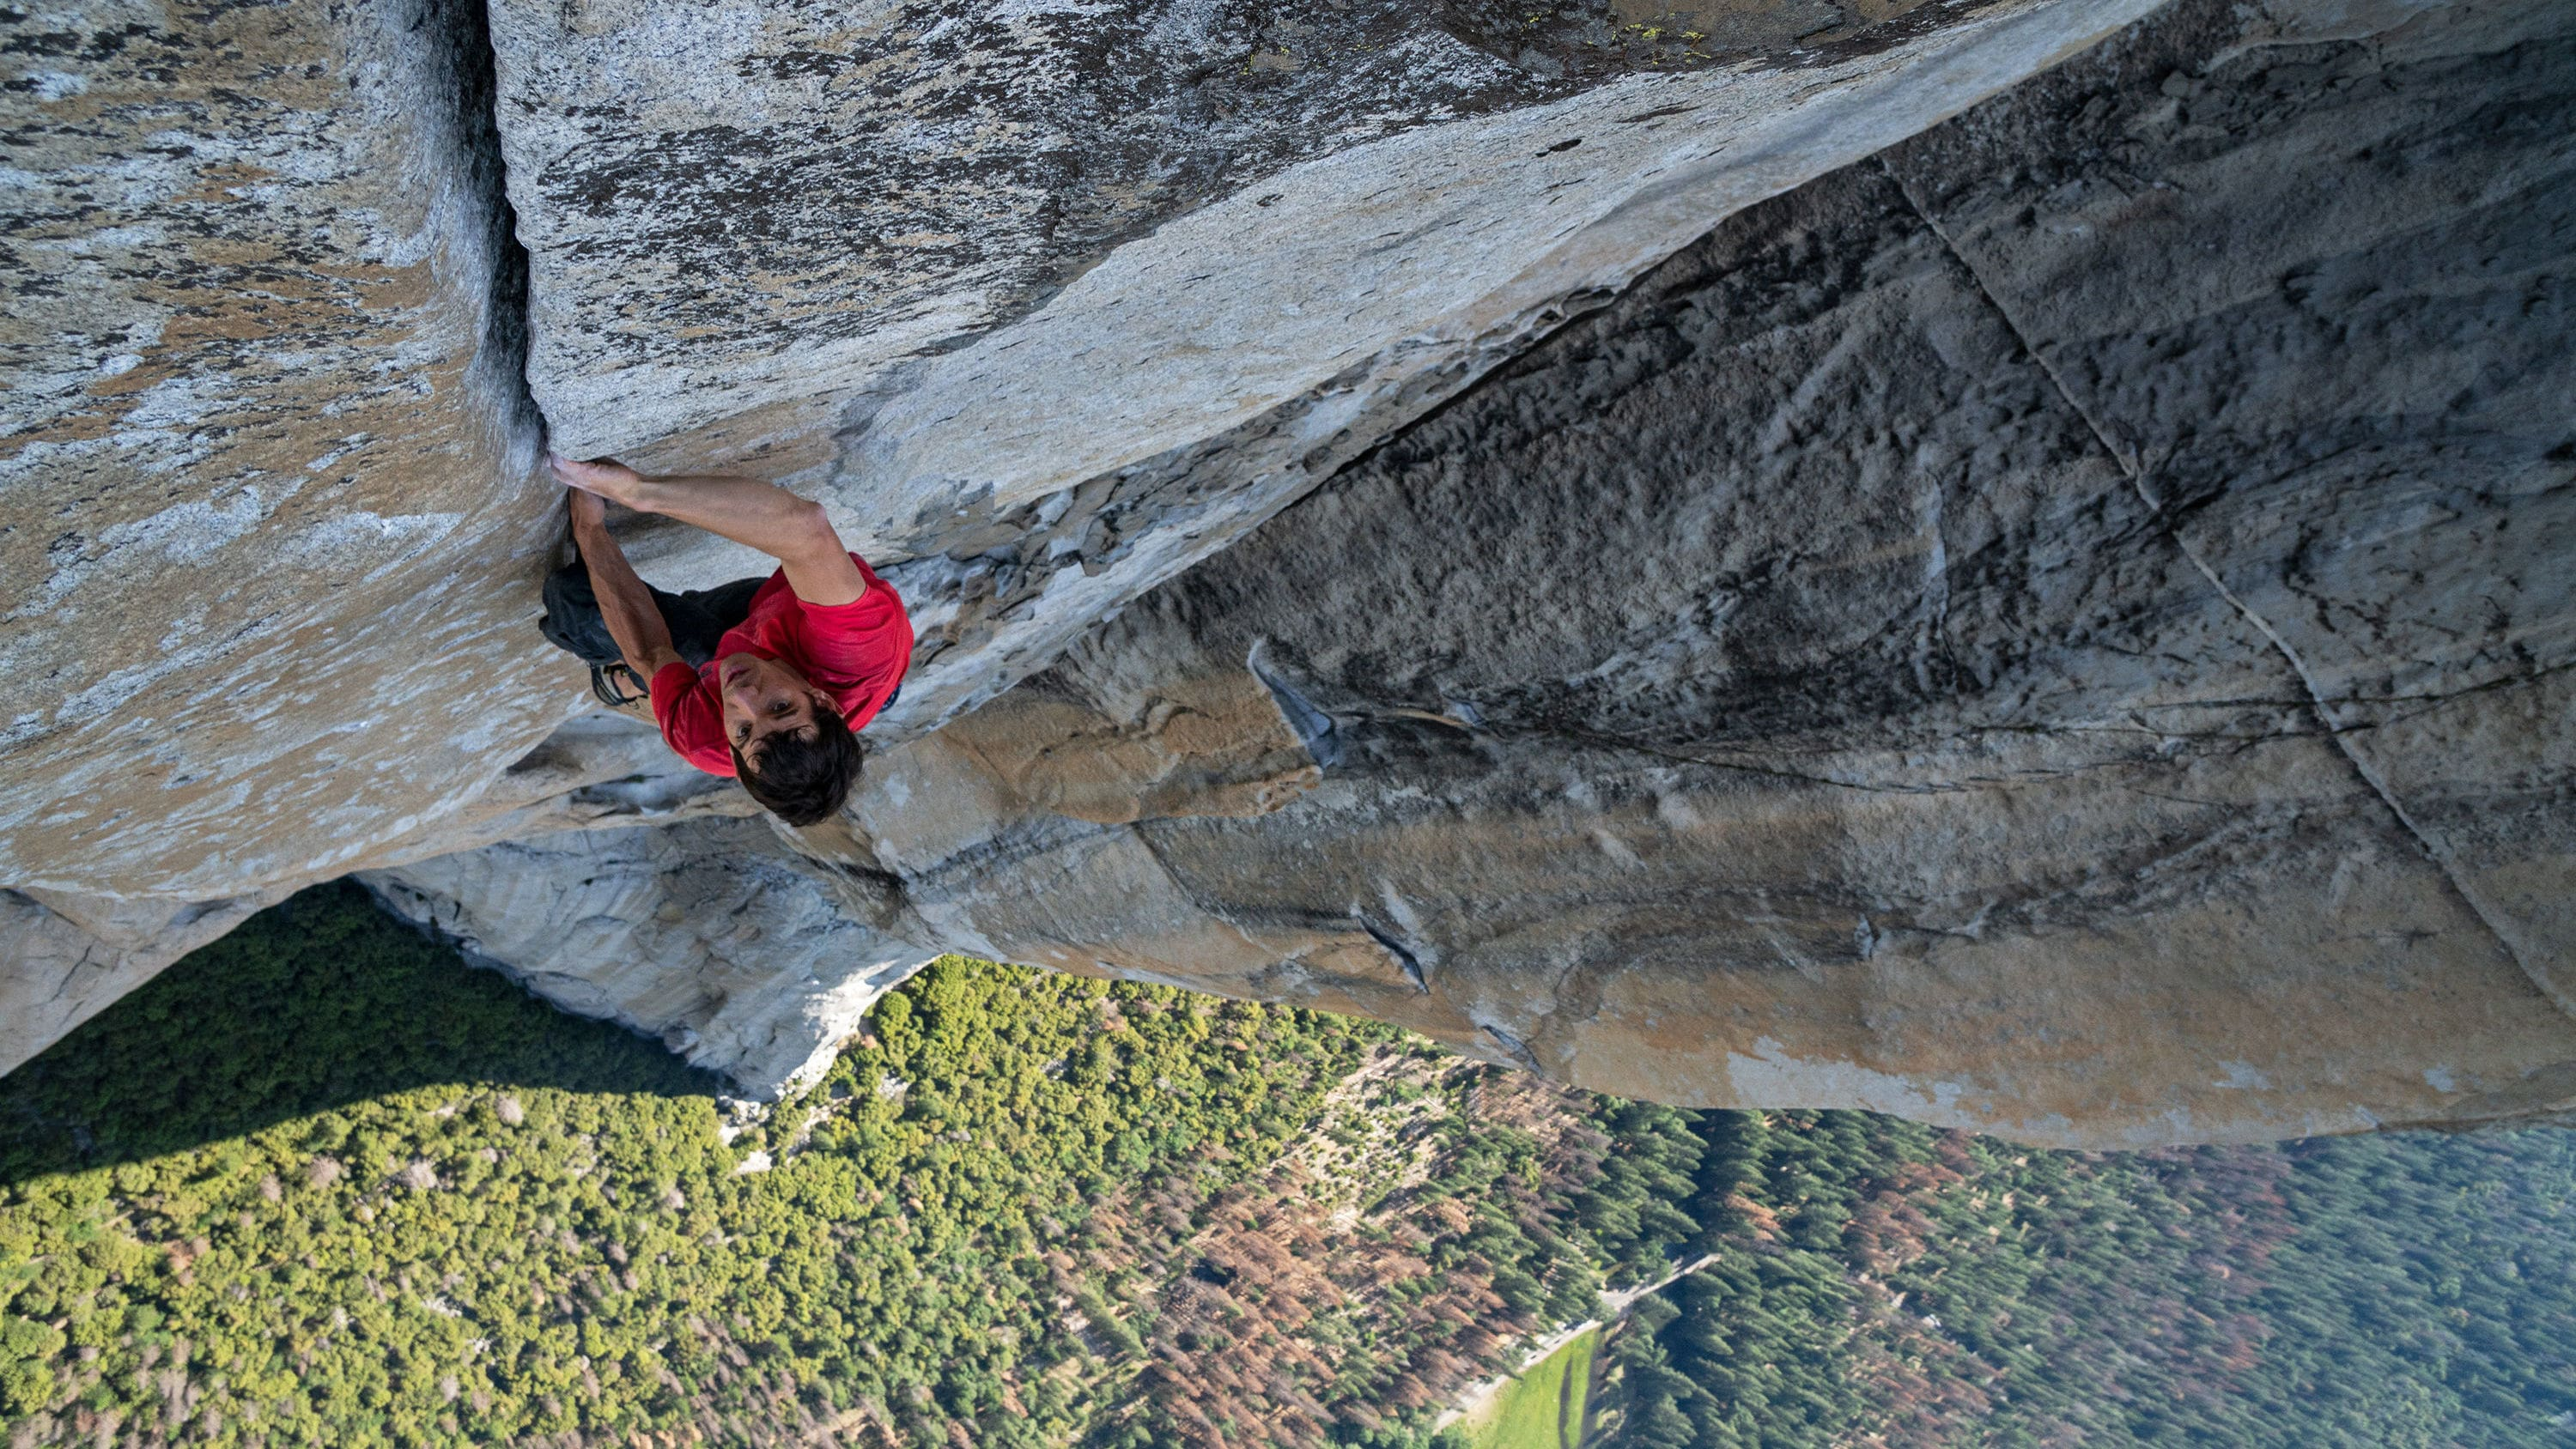 Alex Honnold making the first free solo ascent of El Capitan's Freerider in Yosemite National Park, California. (Photo by National Geographic/Jimmy Chin)